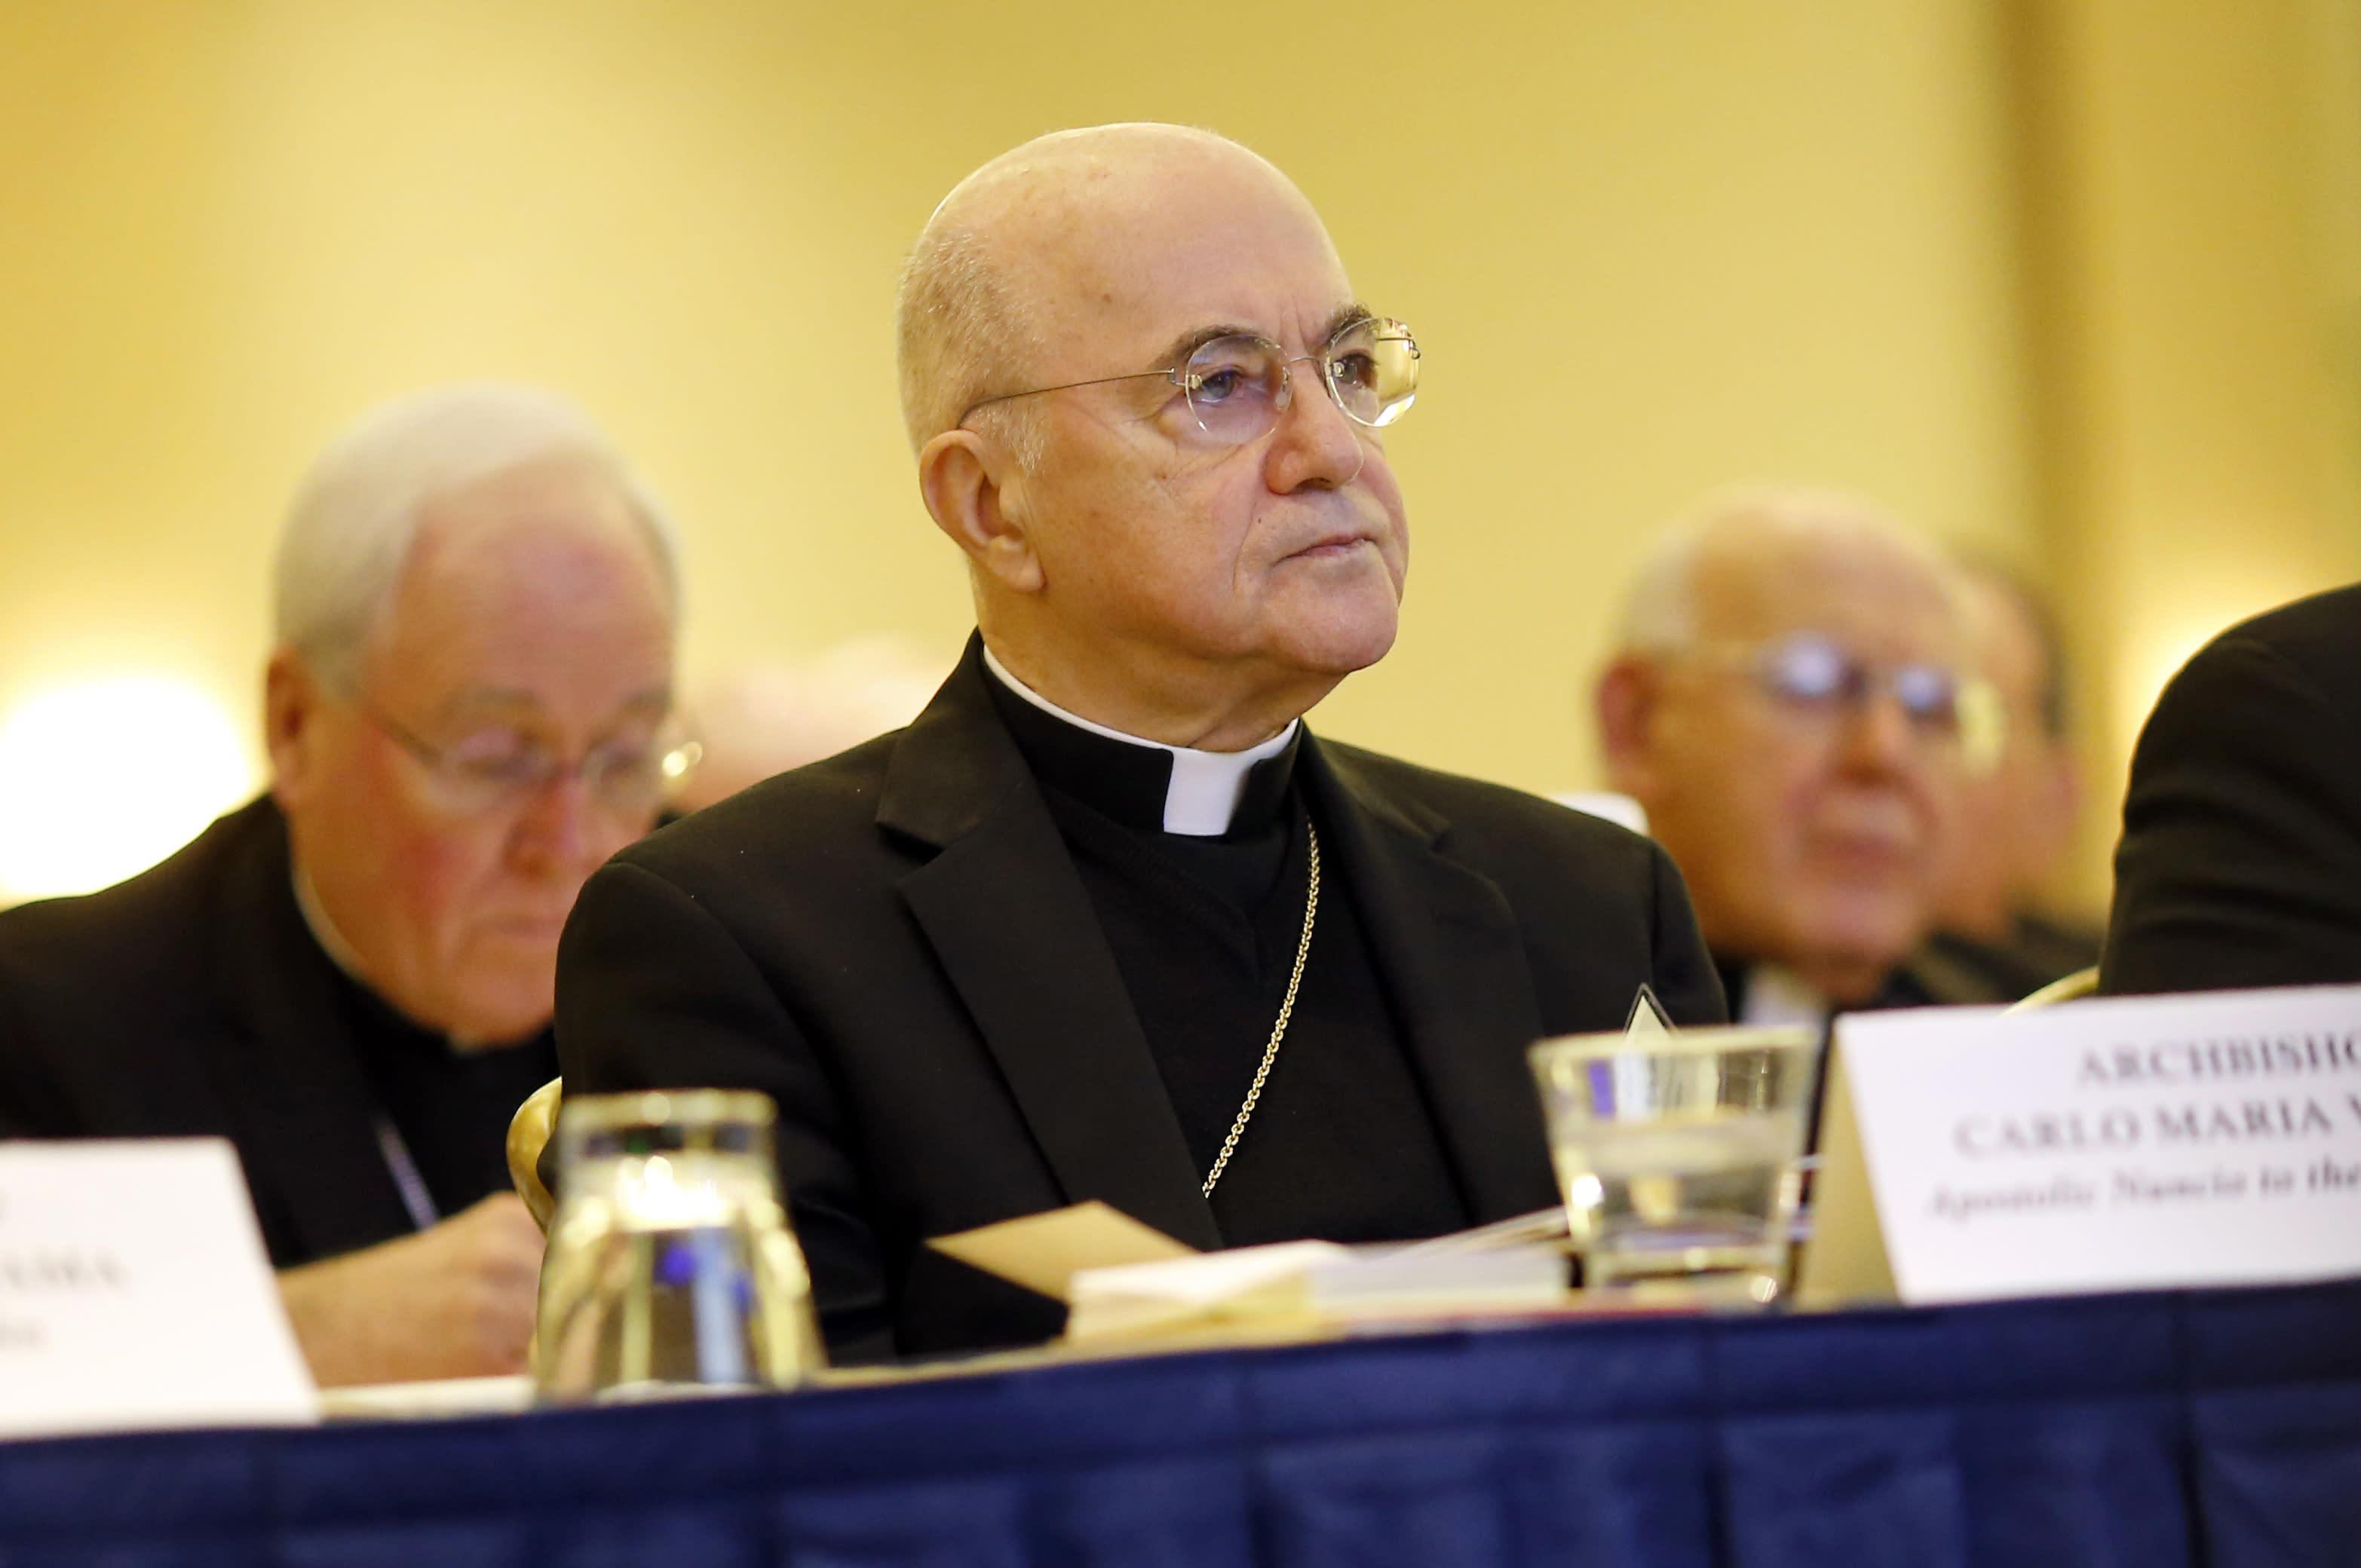 FILE - In this Nov. 16, 2015 file photo, Archbishop Carlo Maria Vigano, Apostolic Nuncio to the U.S., listens to remarks at the U.S. Conference of Catholic Bishops' annual fall meeting in Baltimore. Vigano accused Pope Francis last month of covering up the sexual misconduct of ex-Cardinal Theodore McCarrick and rehabilitating him from sanctions imposed by Pope Benedict XVI. (AP Photo/Patrick Semansky, File)